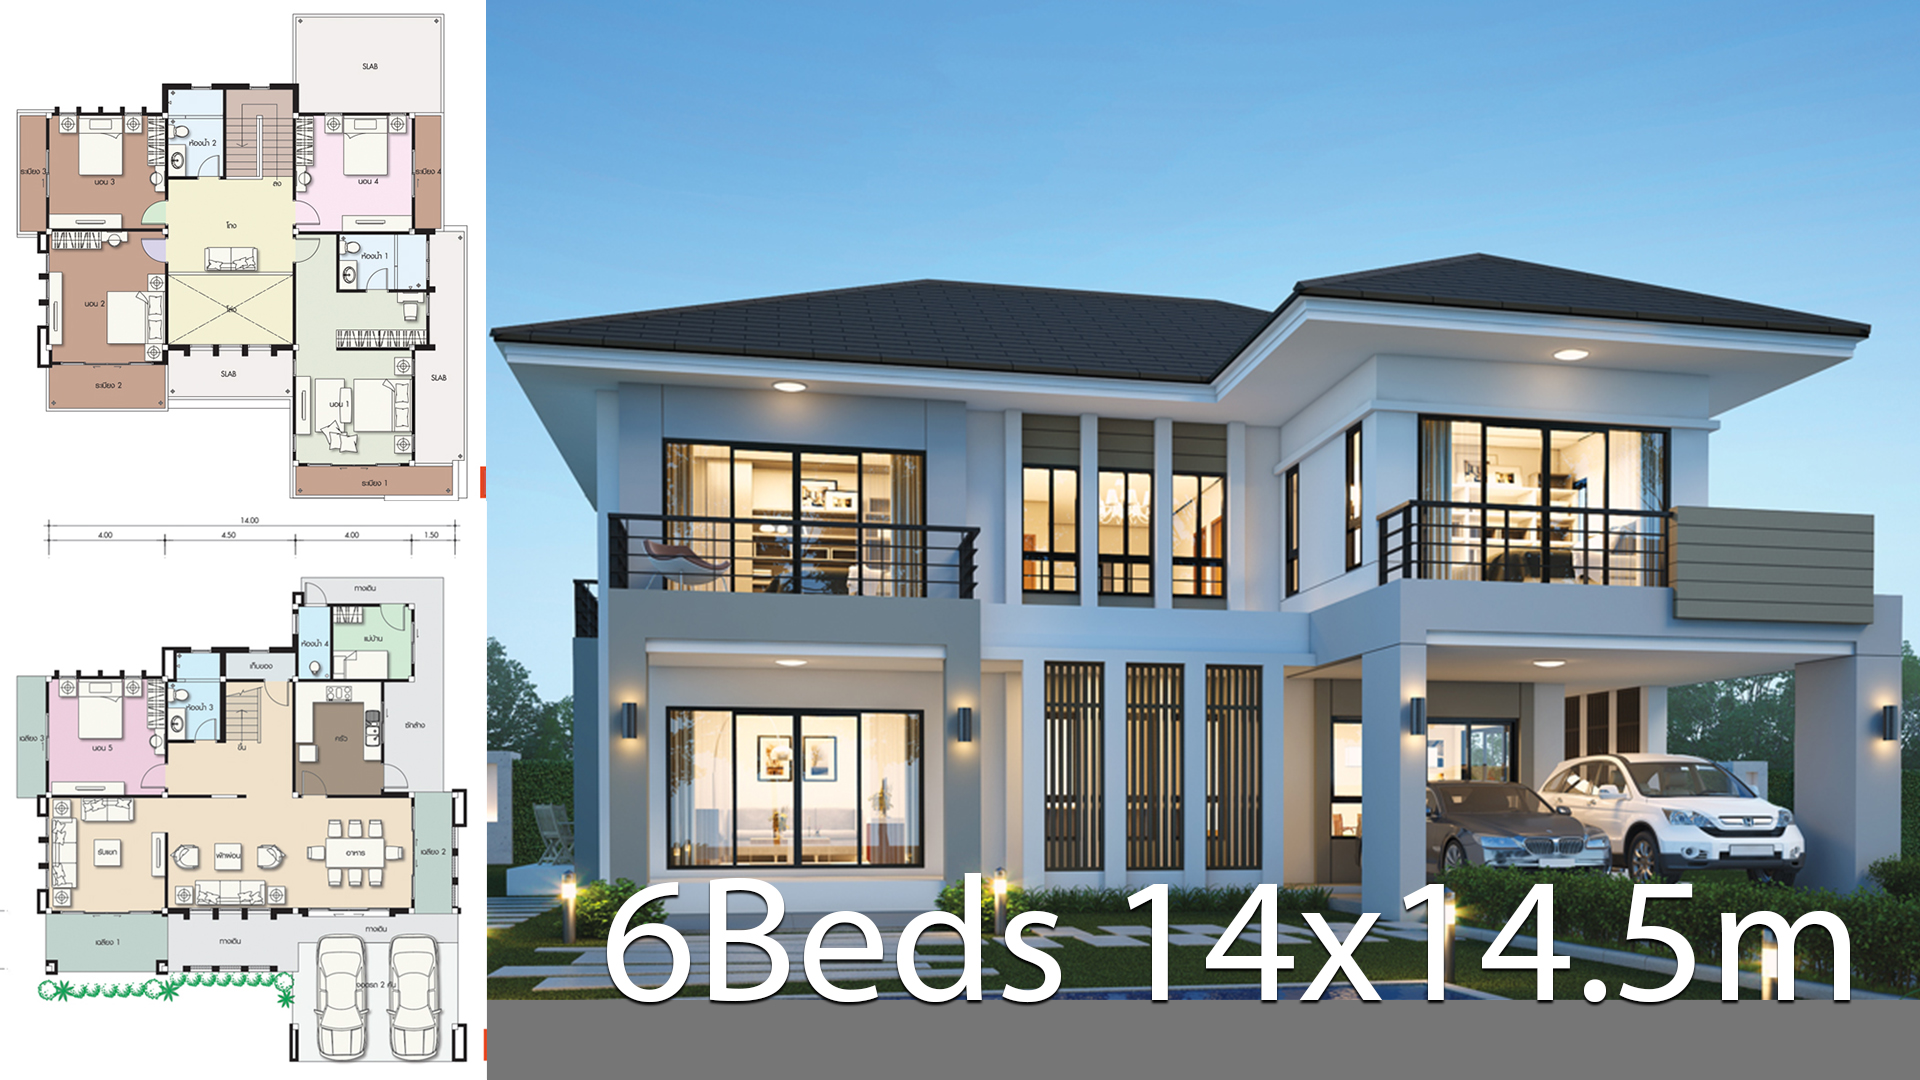 house design plan 14x14.5m with 6 bedrooms - home ideas